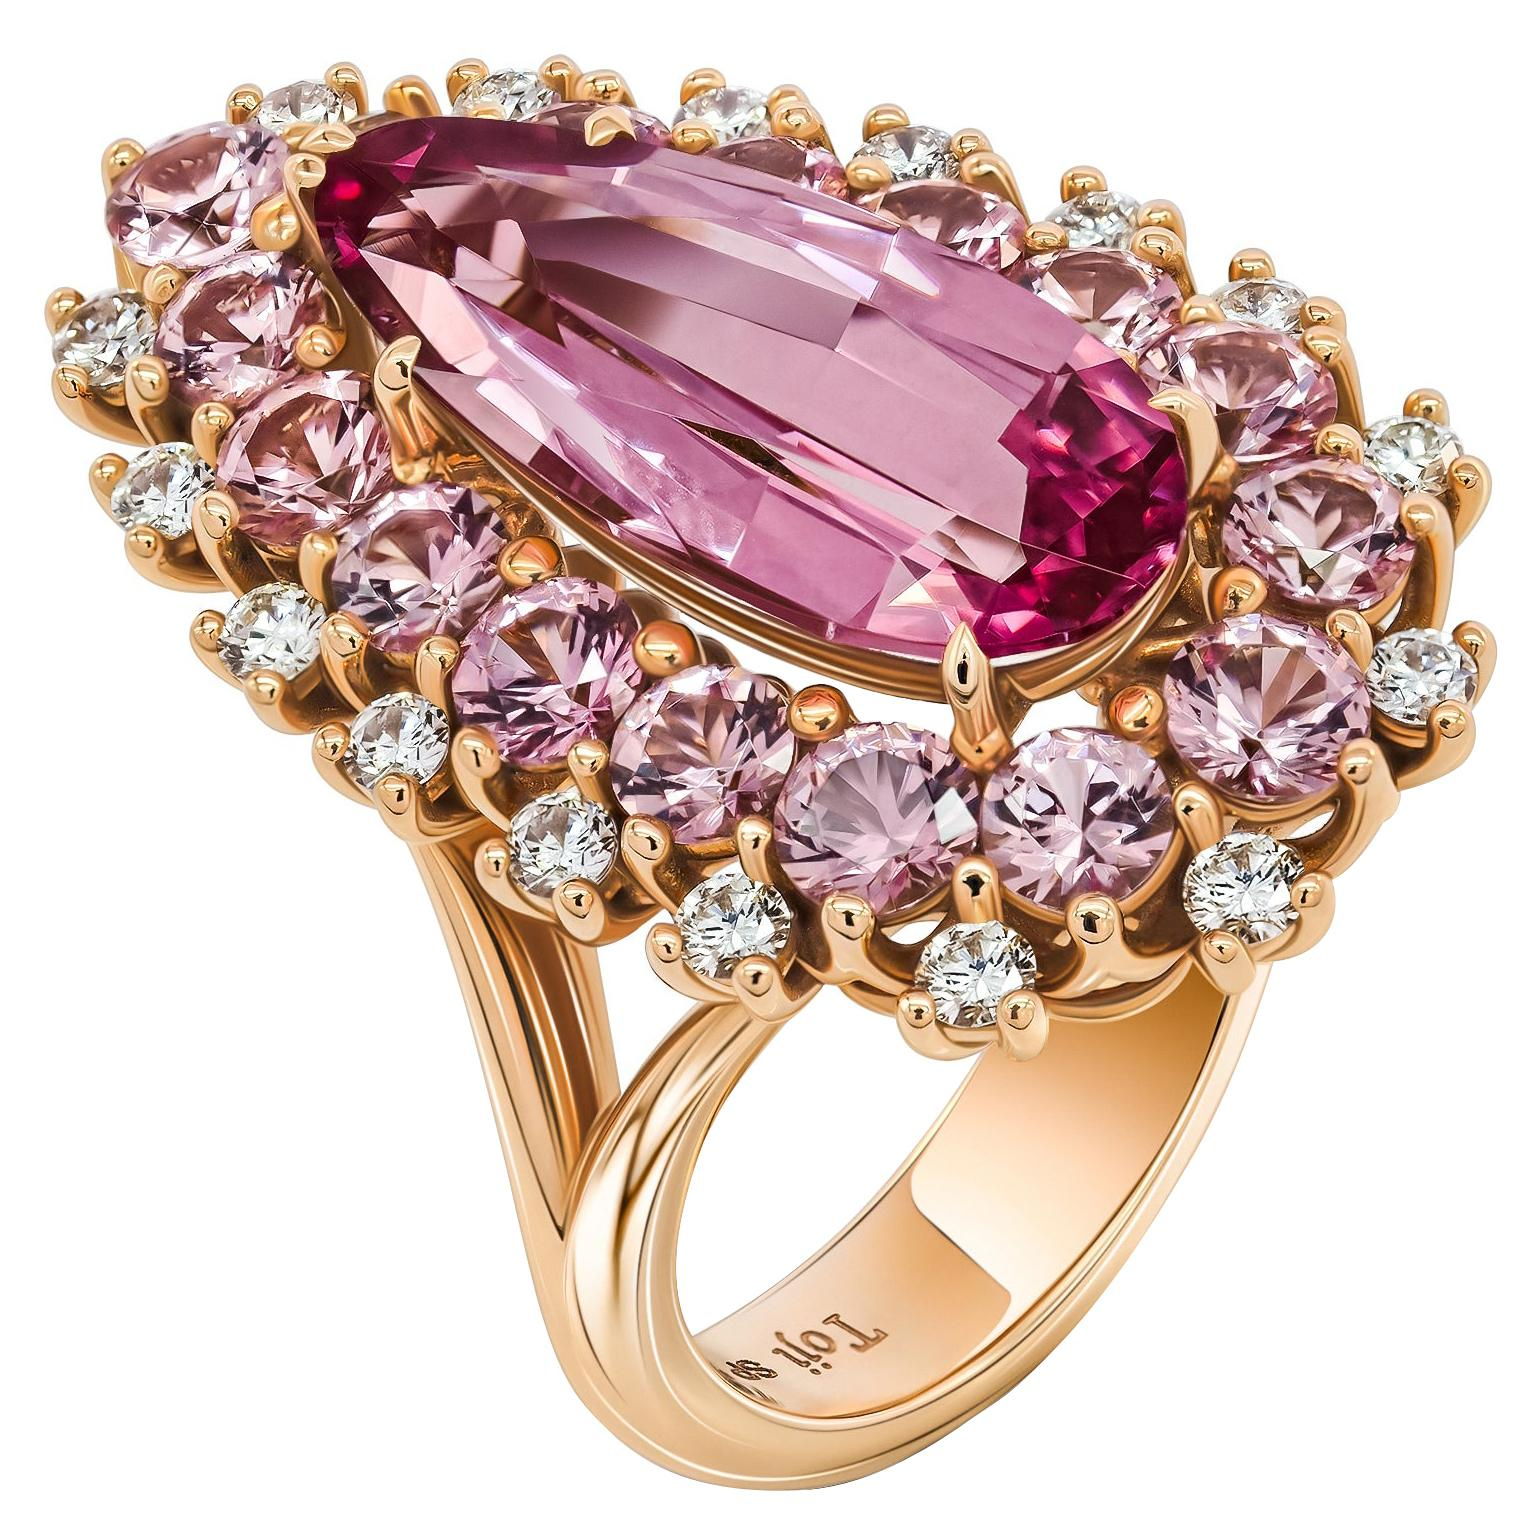 Pink Spinel and Diamonds Ring, 18k Rose Gold, Pink Spinels and Diamonds Ring